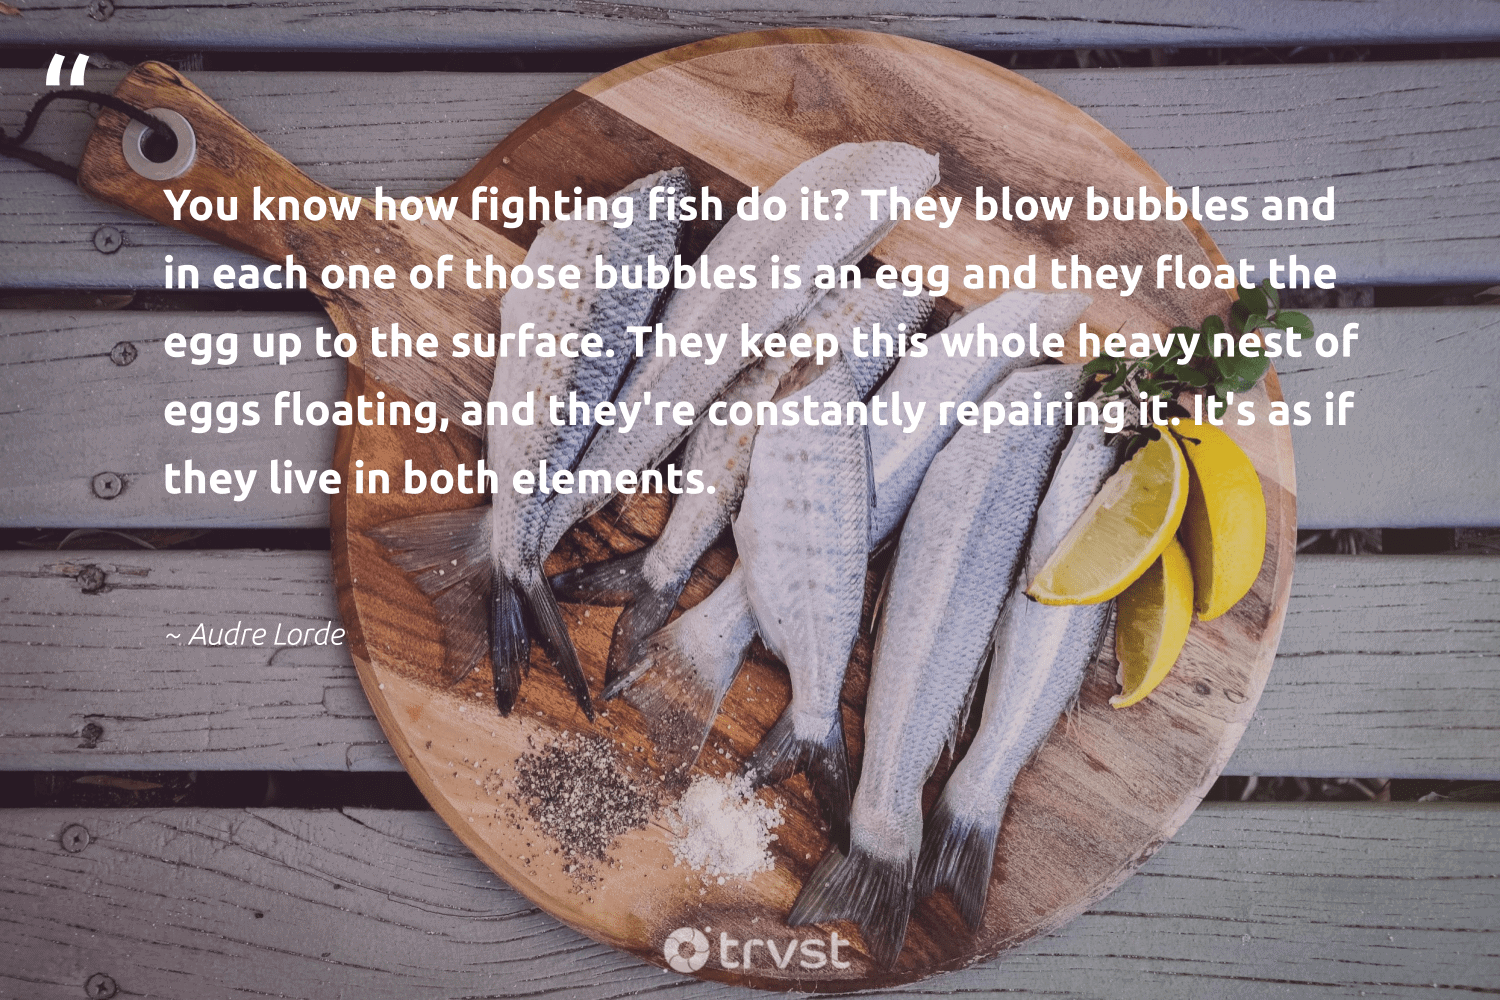 """""""You know how fighting fish do it? They blow bubbles and in each one of those bubbles is an egg and they float the egg up to the surface. They keep this whole heavy nest of eggs floating, and they're constantly repairing it. It's as if they live in both elements.""""  - Audre Lorde #trvst #quotes #fish #sealife #bethechange #healthyocean #takeaction #protectnature #ecoconscious #savetheoceans #collectiveaction #wildlifeprotection"""